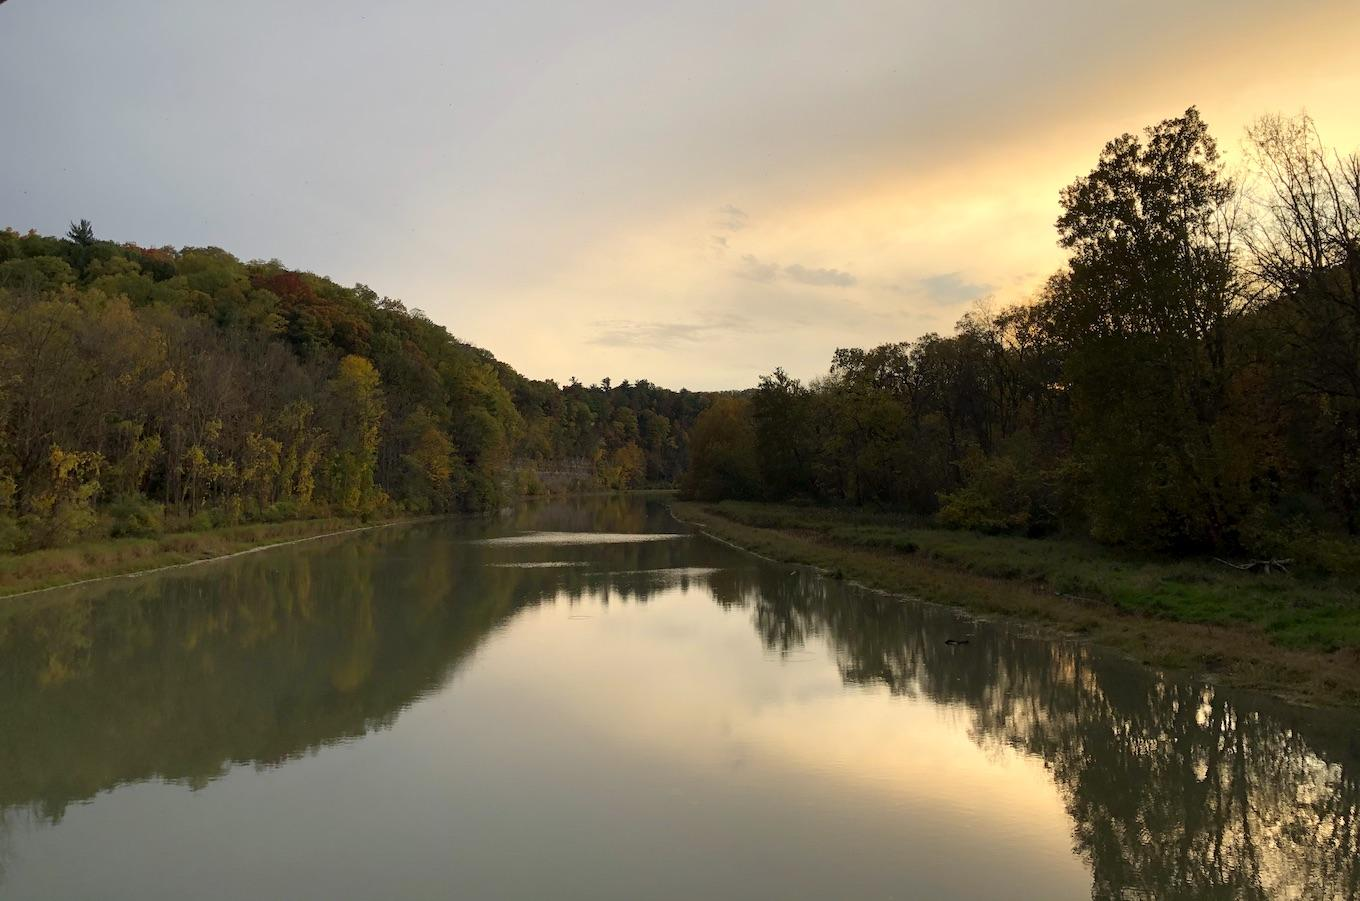 View of the Genesee River from the Mount Morris bridge